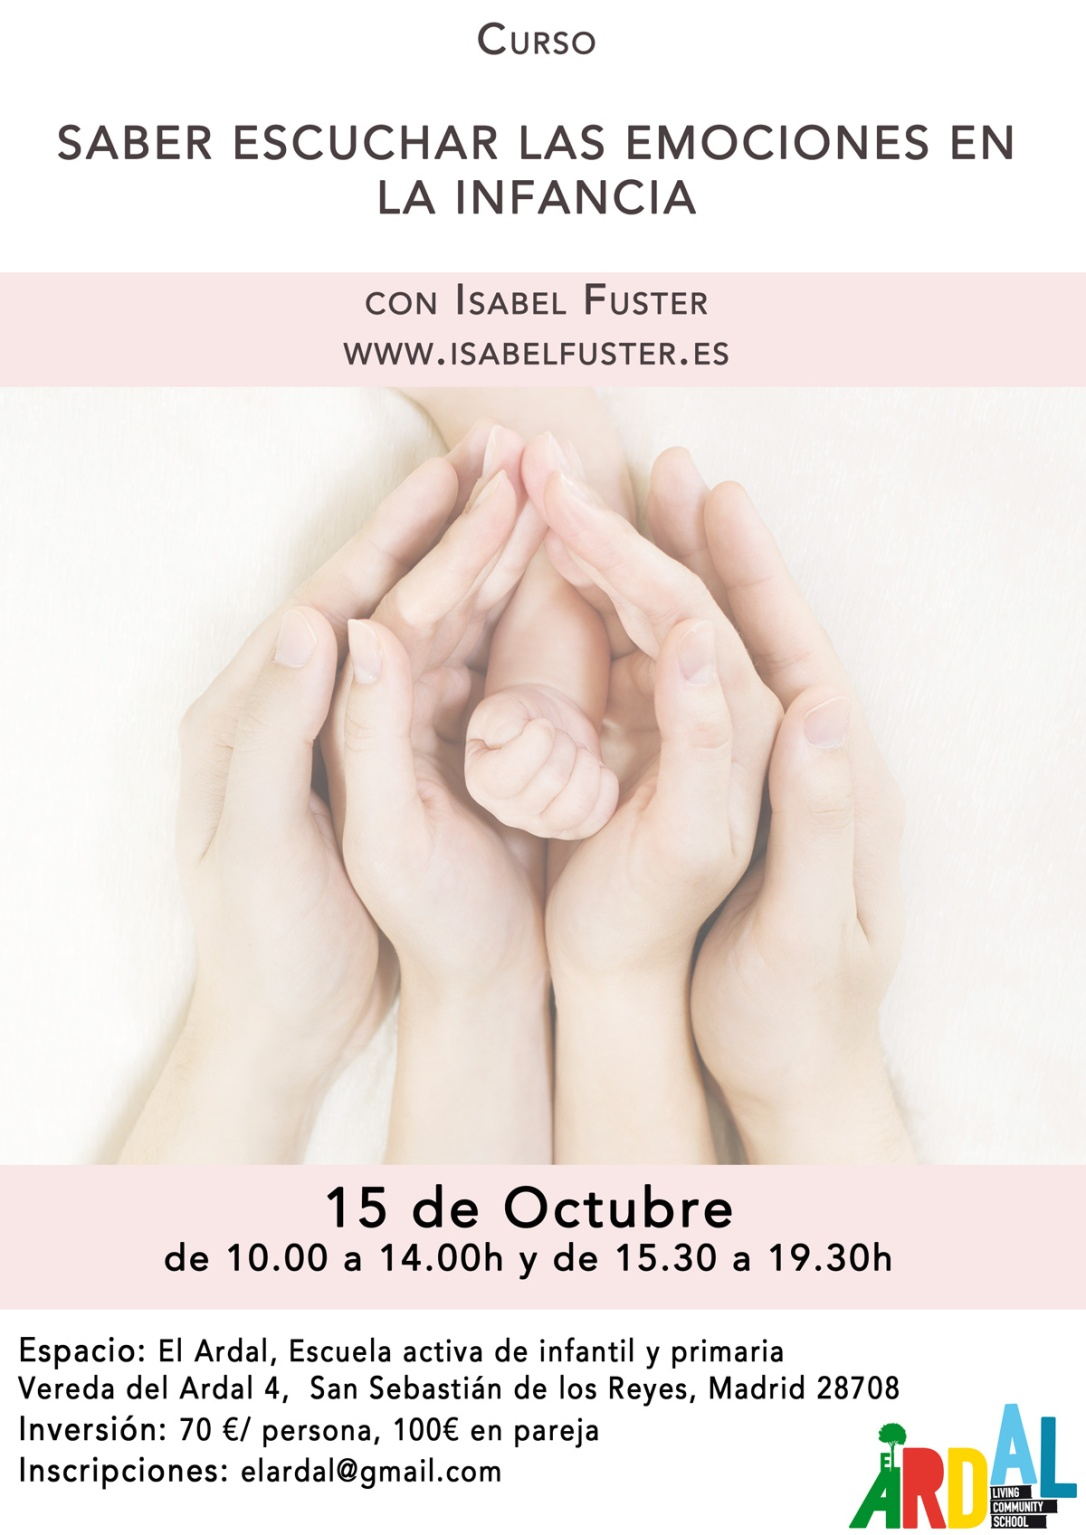 cartelacompardaloct2016